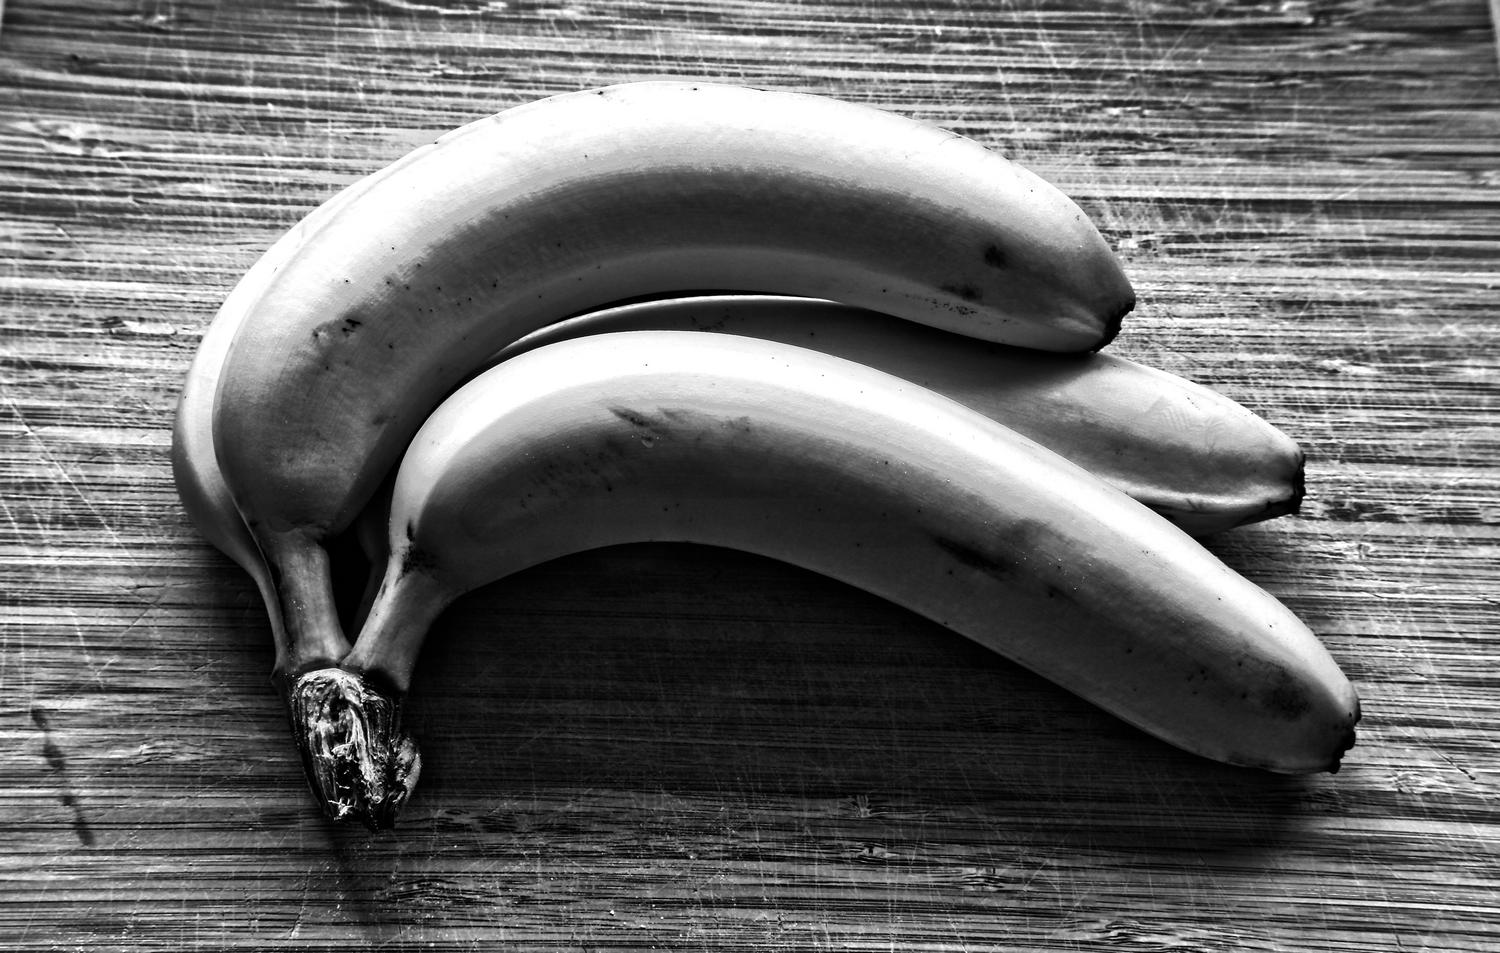 - Tough, urban bananas -  - taken with Sony DSC-R1 - - art  - photography - by Tony Karp